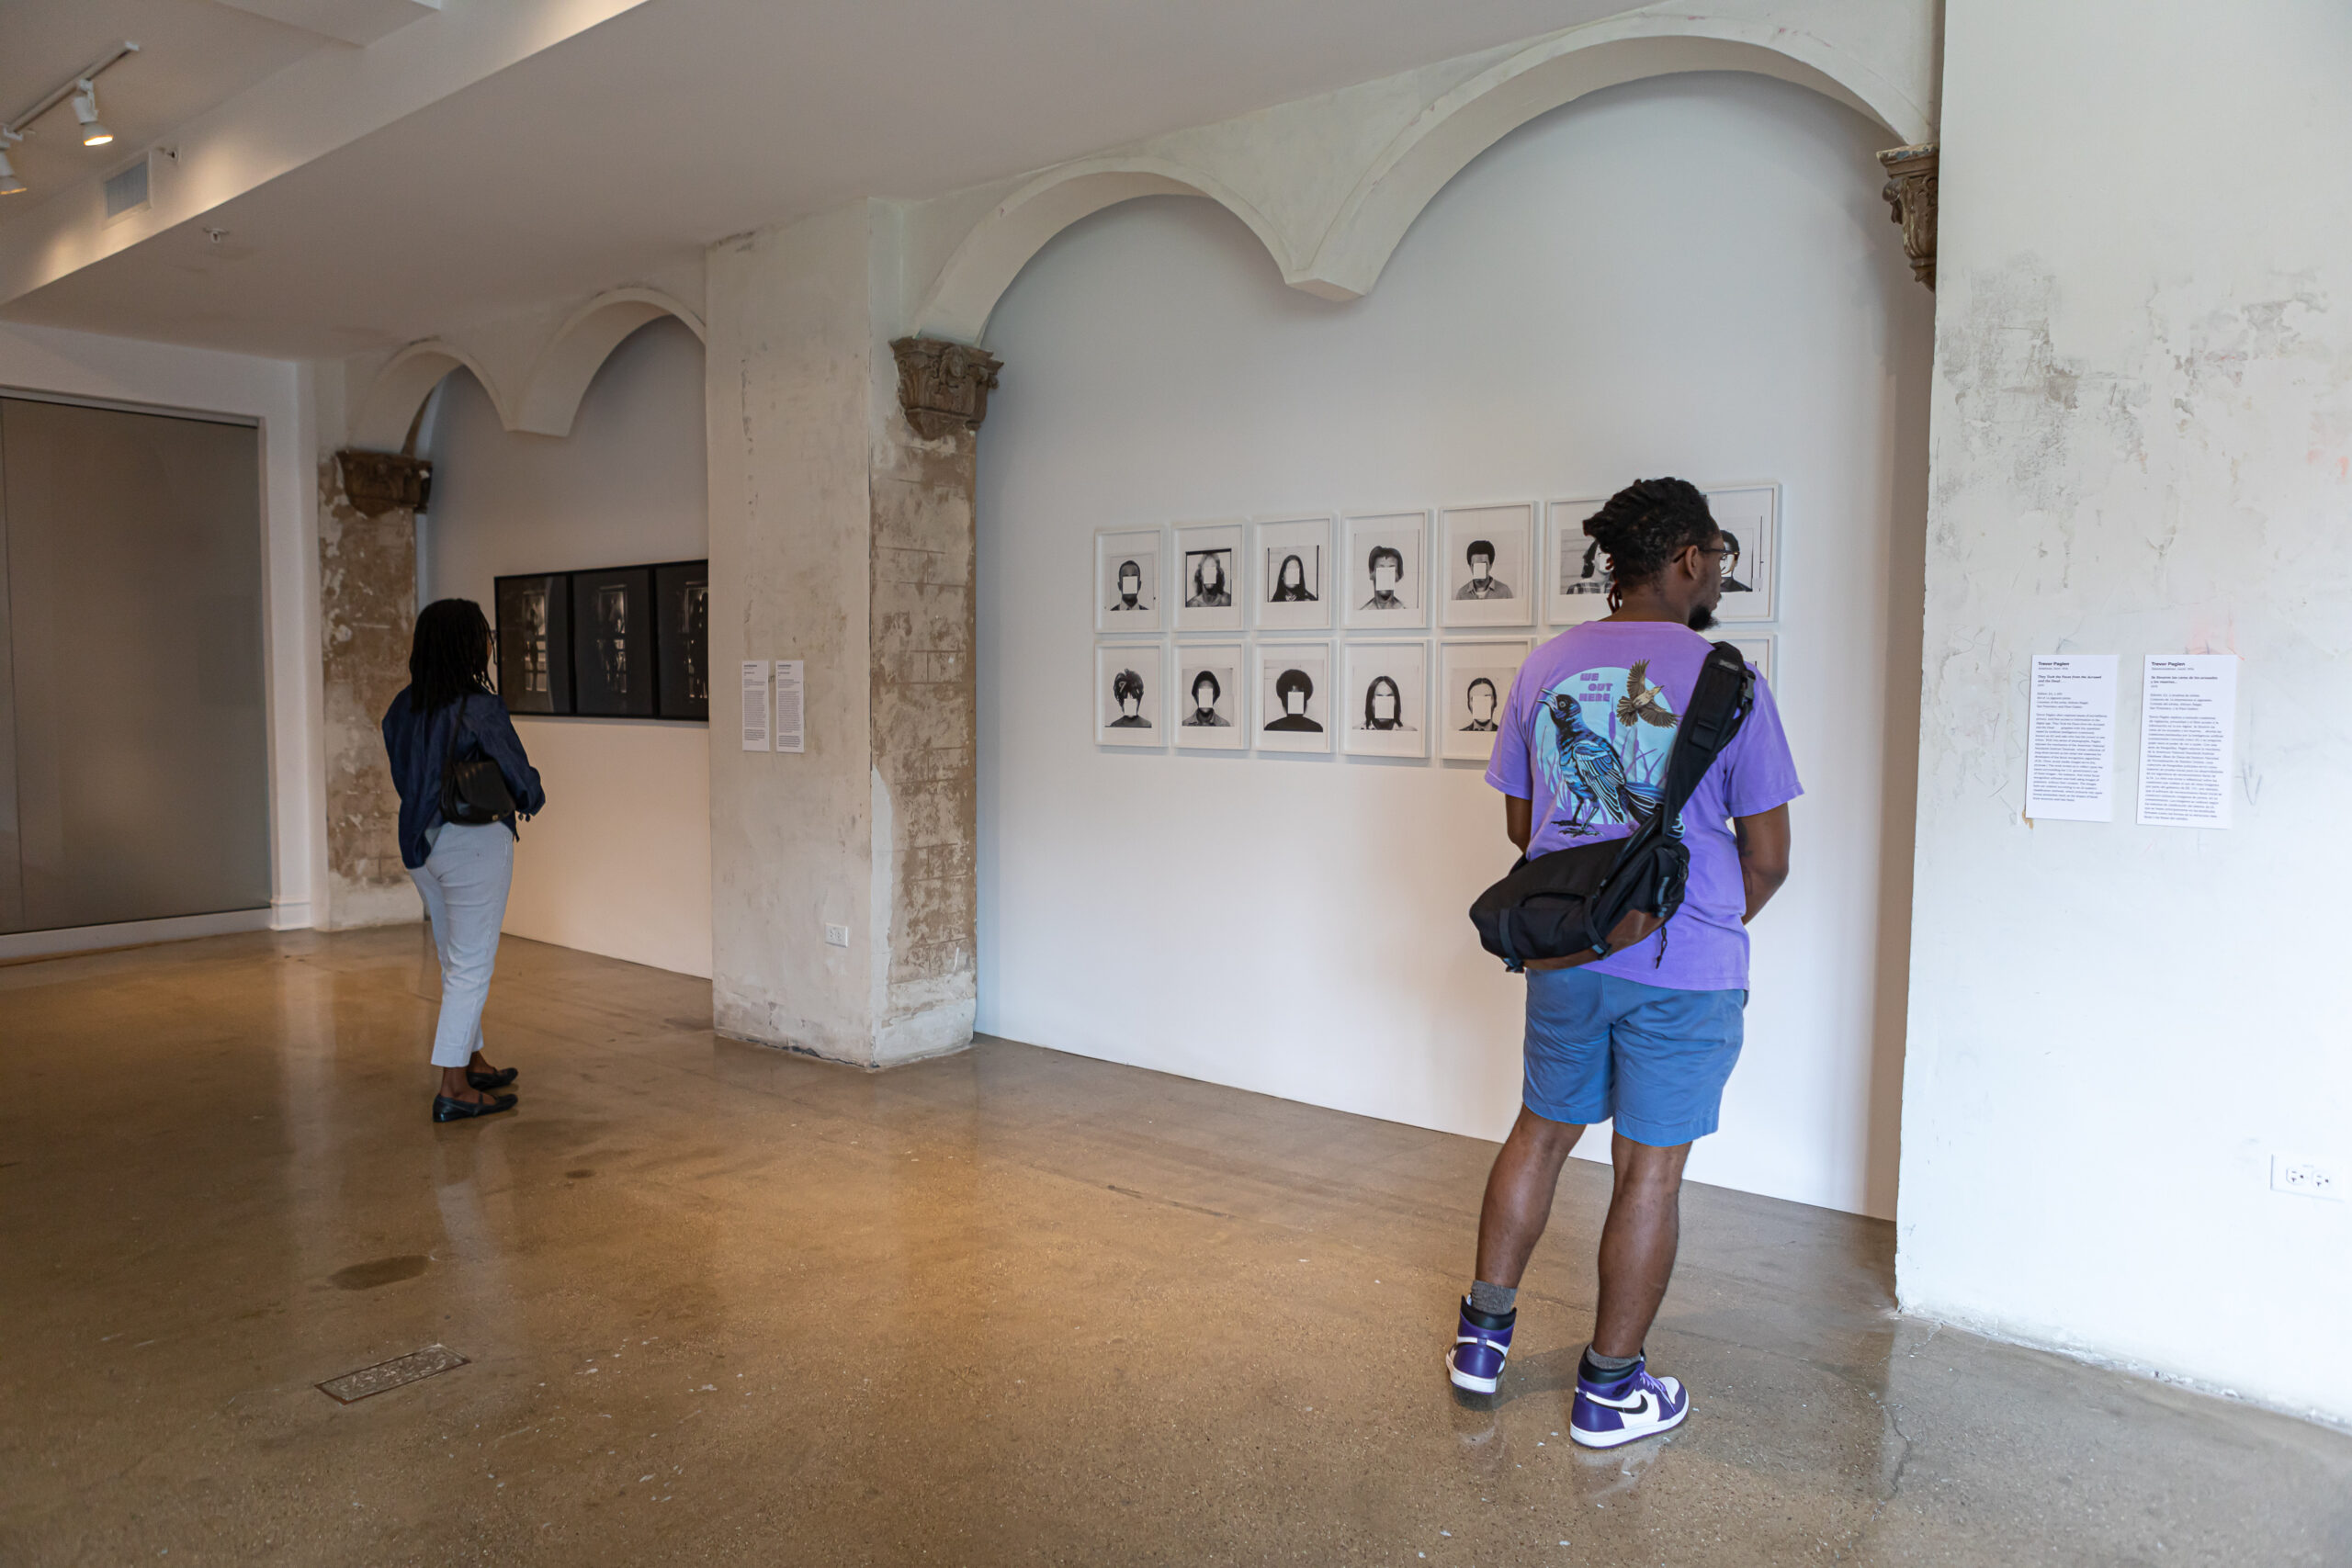 Gallery installation featuring two people gazing at black and white photographs.